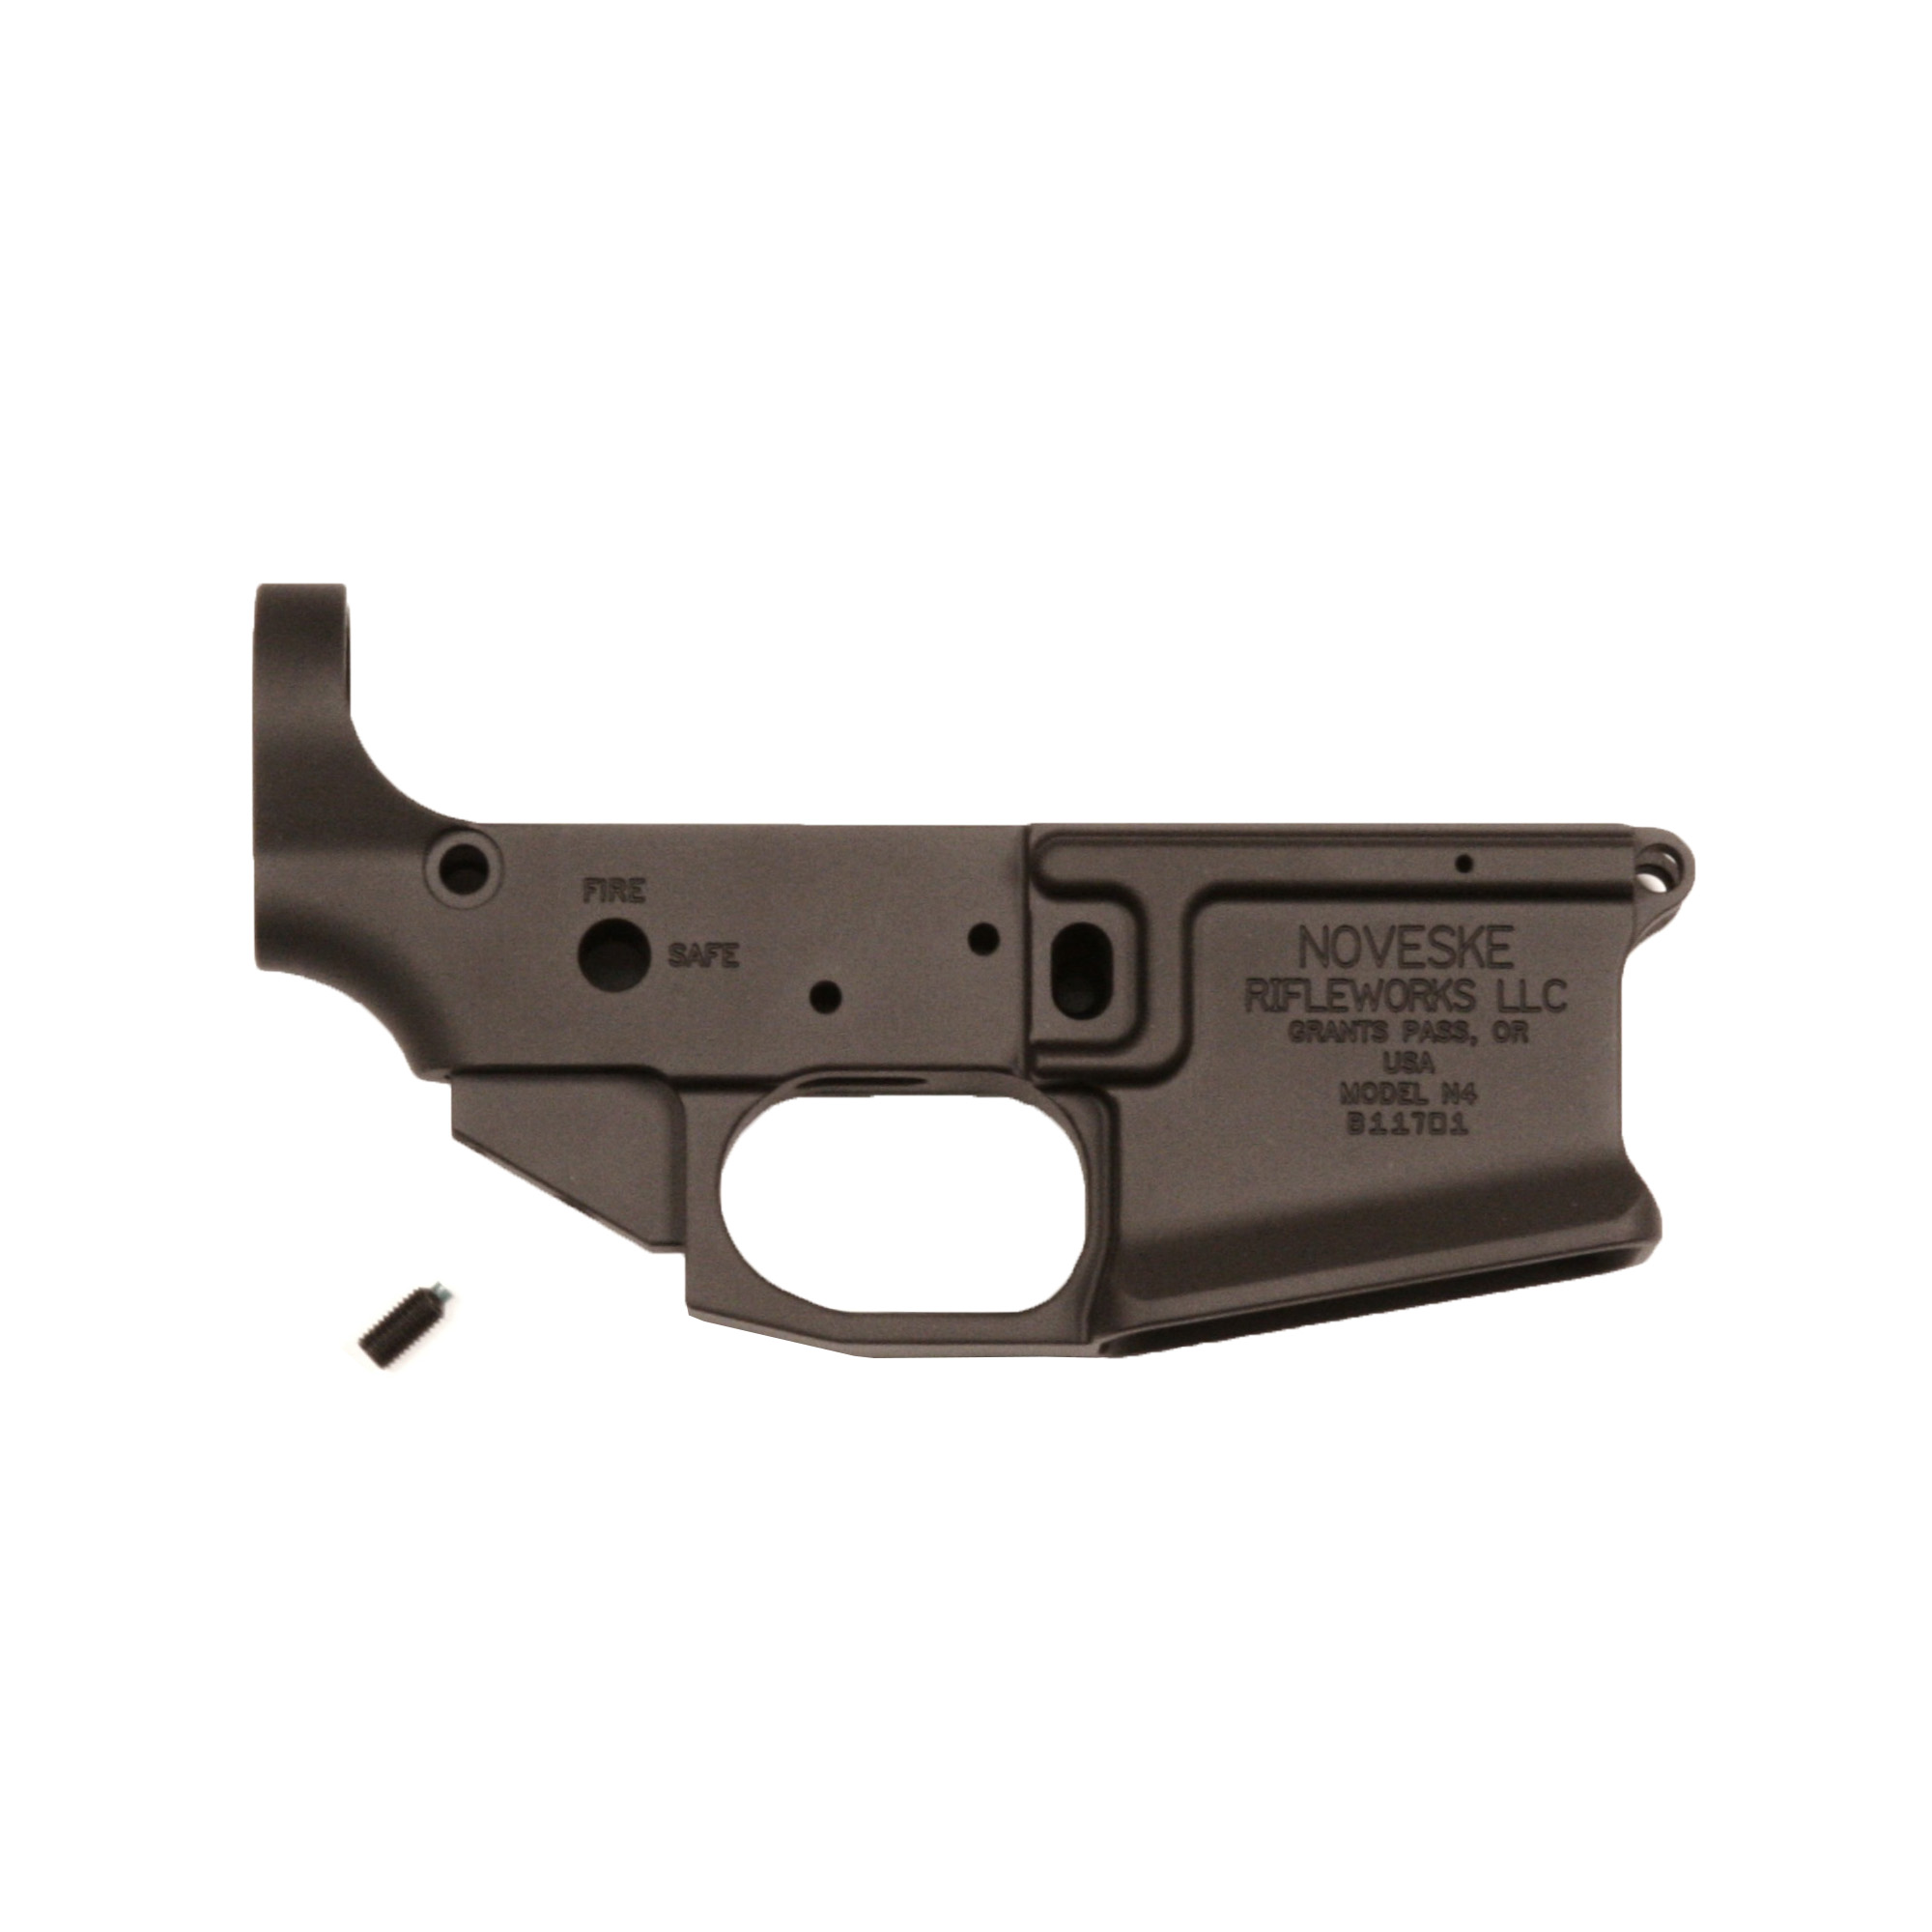 The Noveske Gen III lower receiver is precision machined from billet aluminum. It features a flared magwell and integrated trigger guard. Includes a tension screw to ensure snug fit with upper receiver.